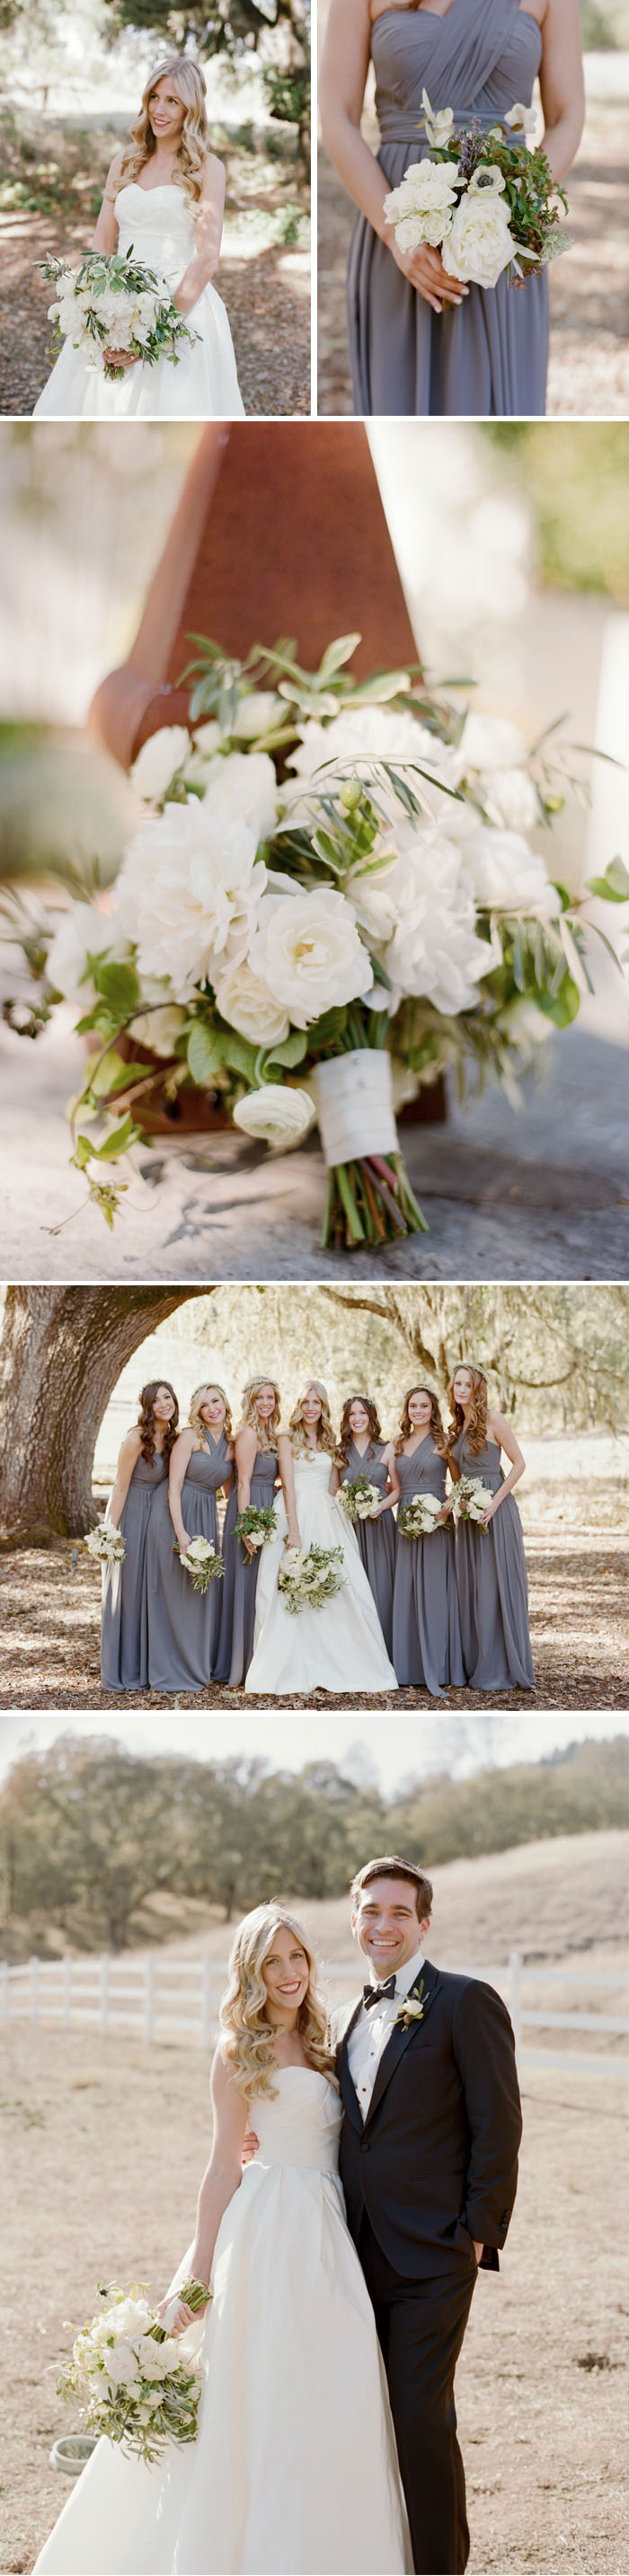 SylvieGil-Durham-Ranch-Organic-Ethereal-Rustic-Bouquet-Bridesmaids-Wedding